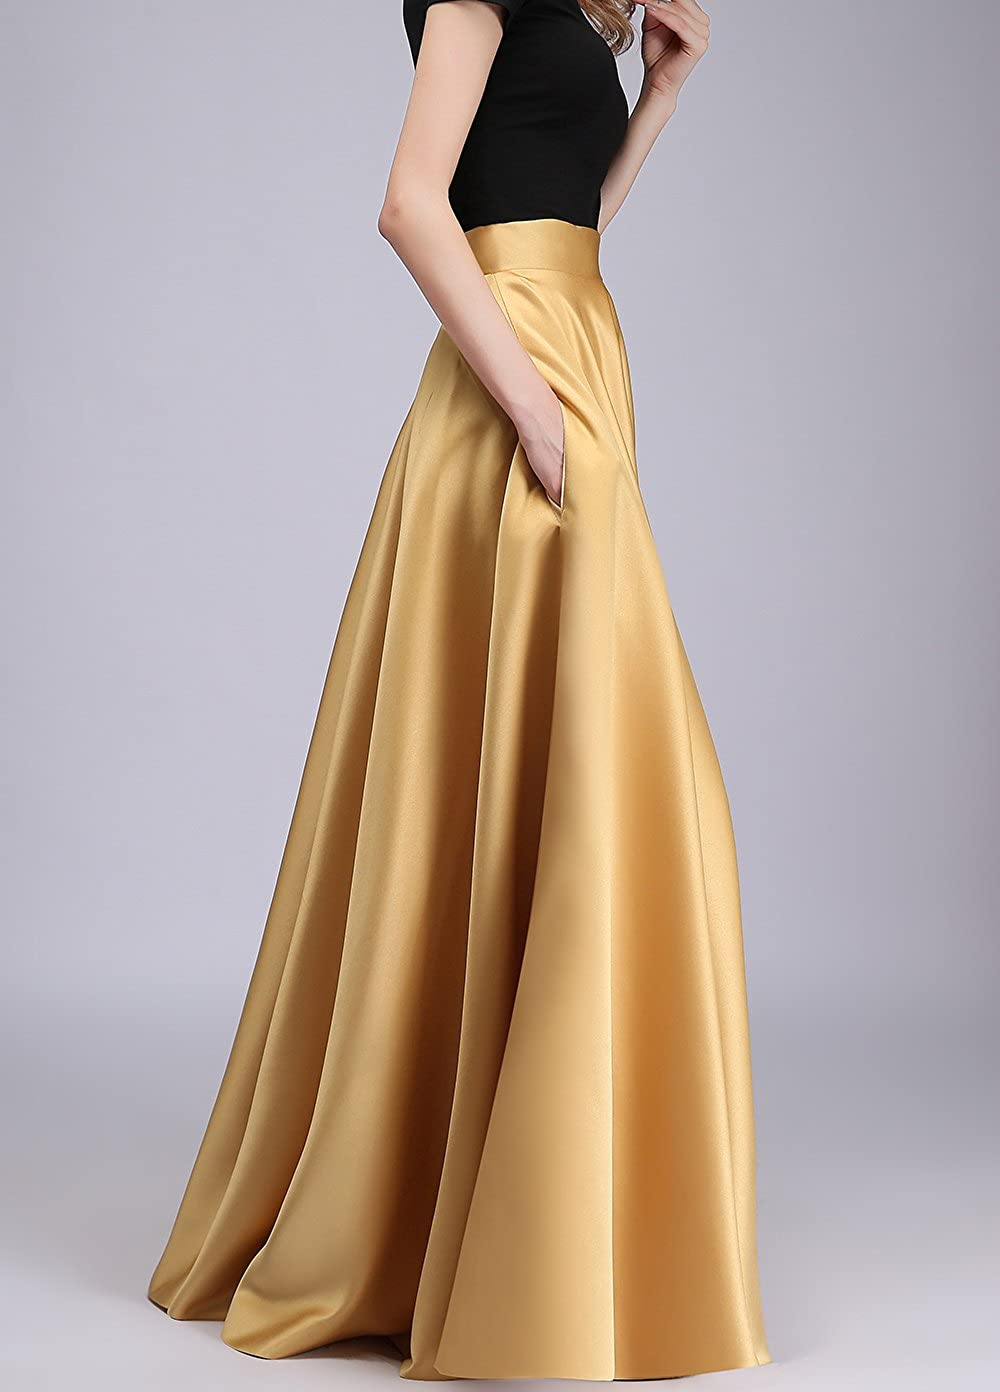 Women's Gold Satin Floor Length High Waist Formal Skirt (24 Colors Available) - DeluxeAdultCostumes.com